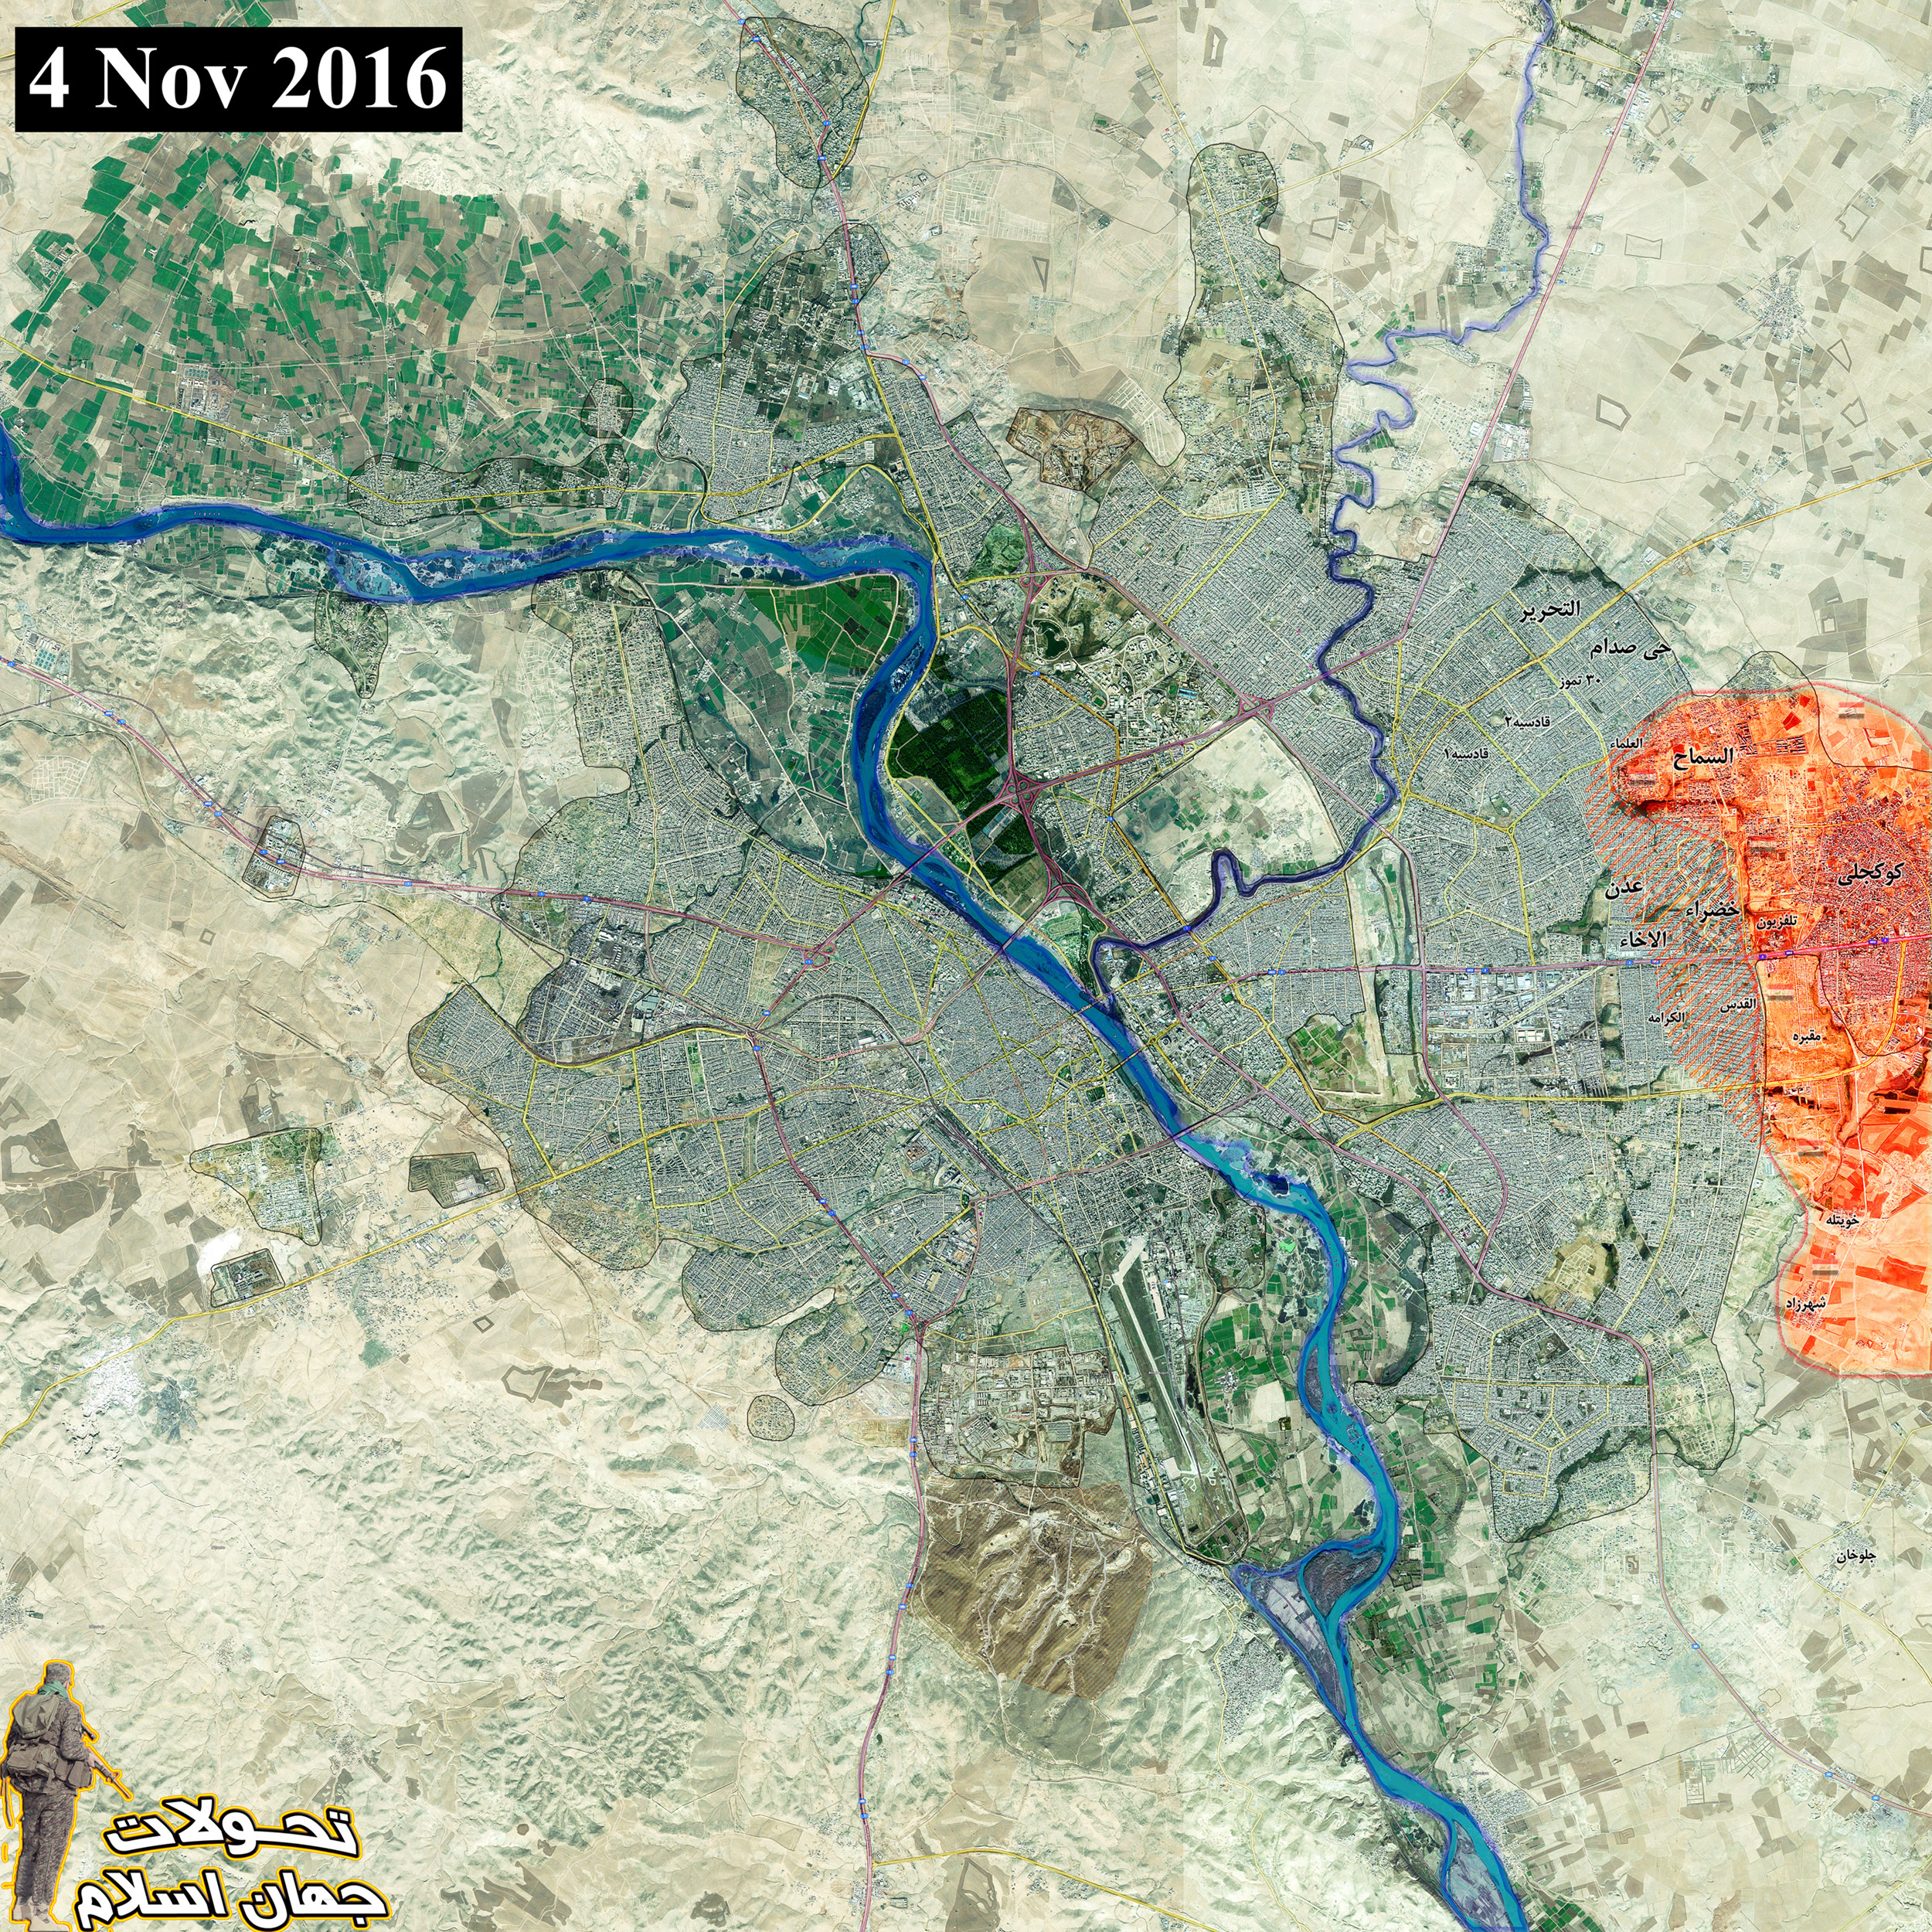 Iraqi Map Update: Military Situation in Mosul on November 4, 2016